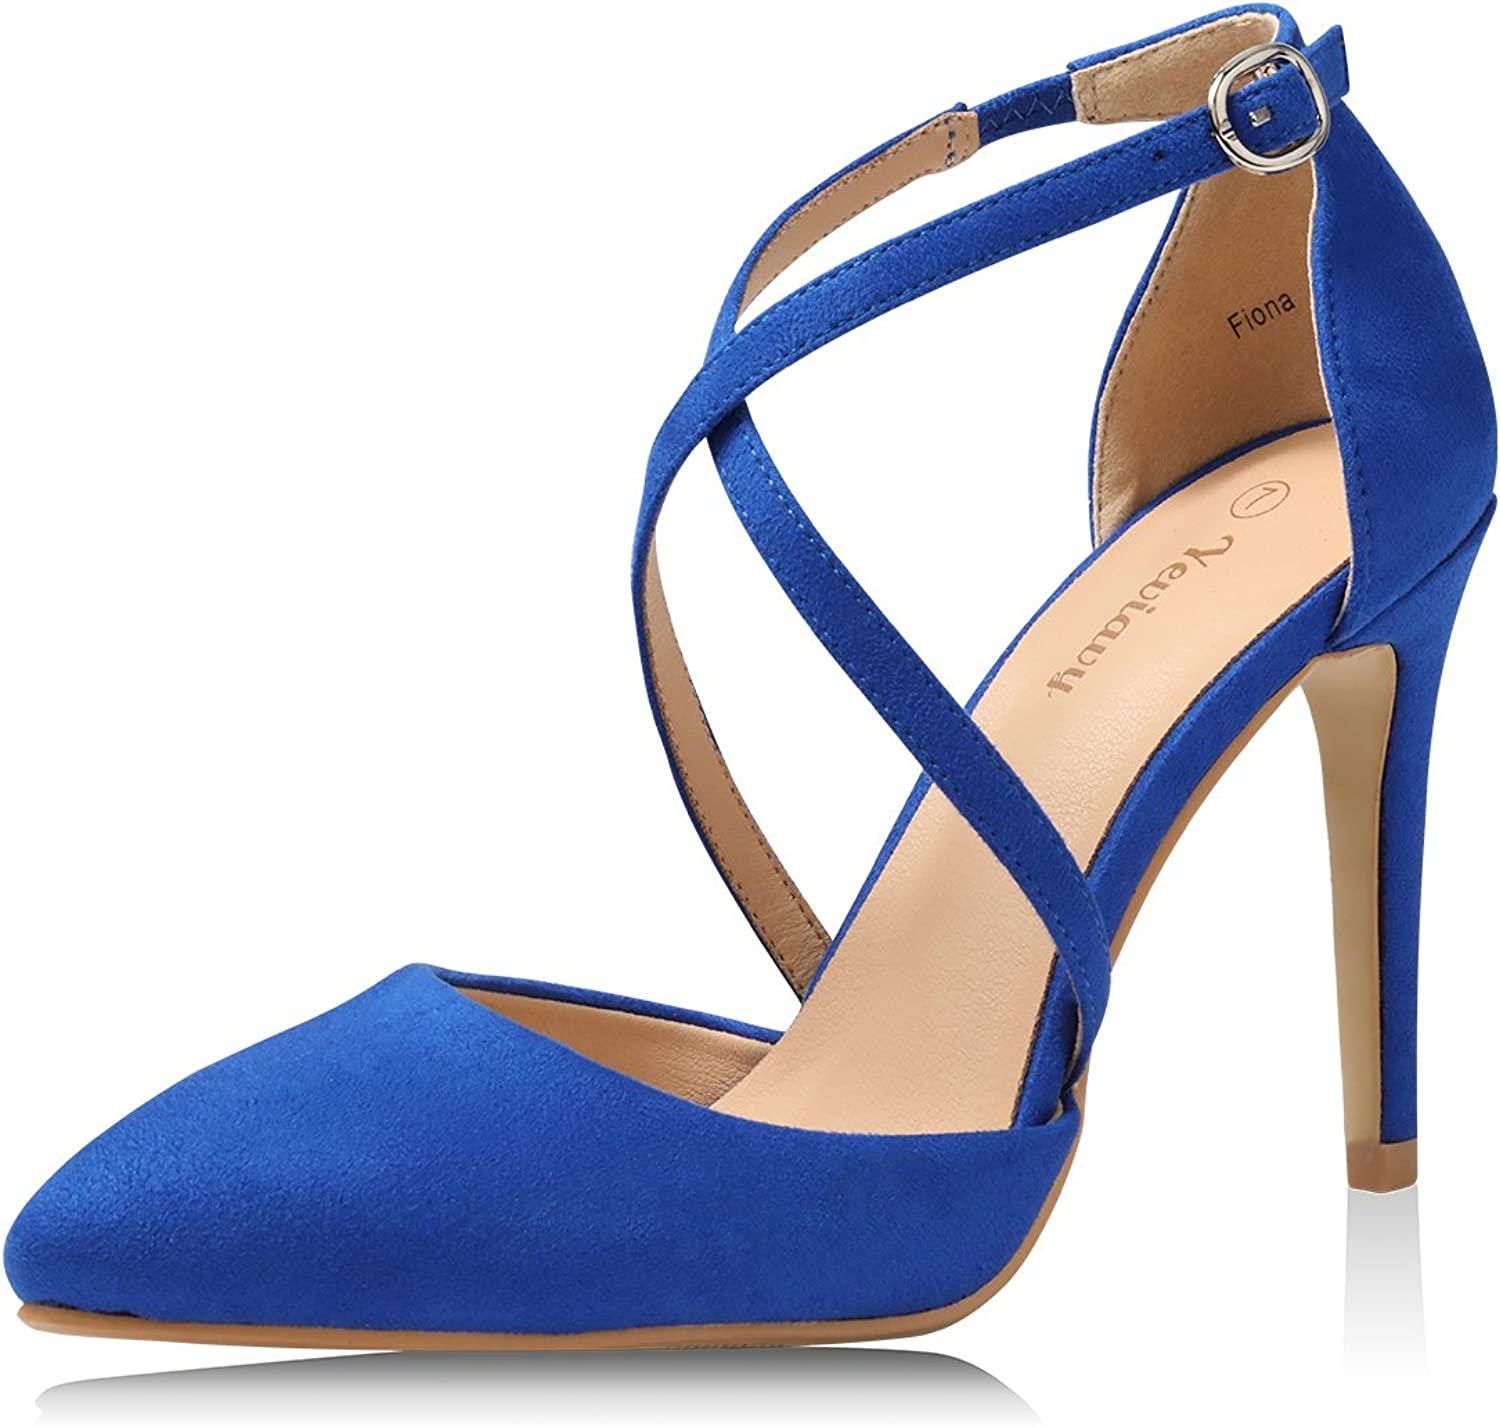 Yeviavy High Heels Women Pumps Dress Pointed Toe shoes Strappy Stiletto Buckle Closure D'Orsay Finona